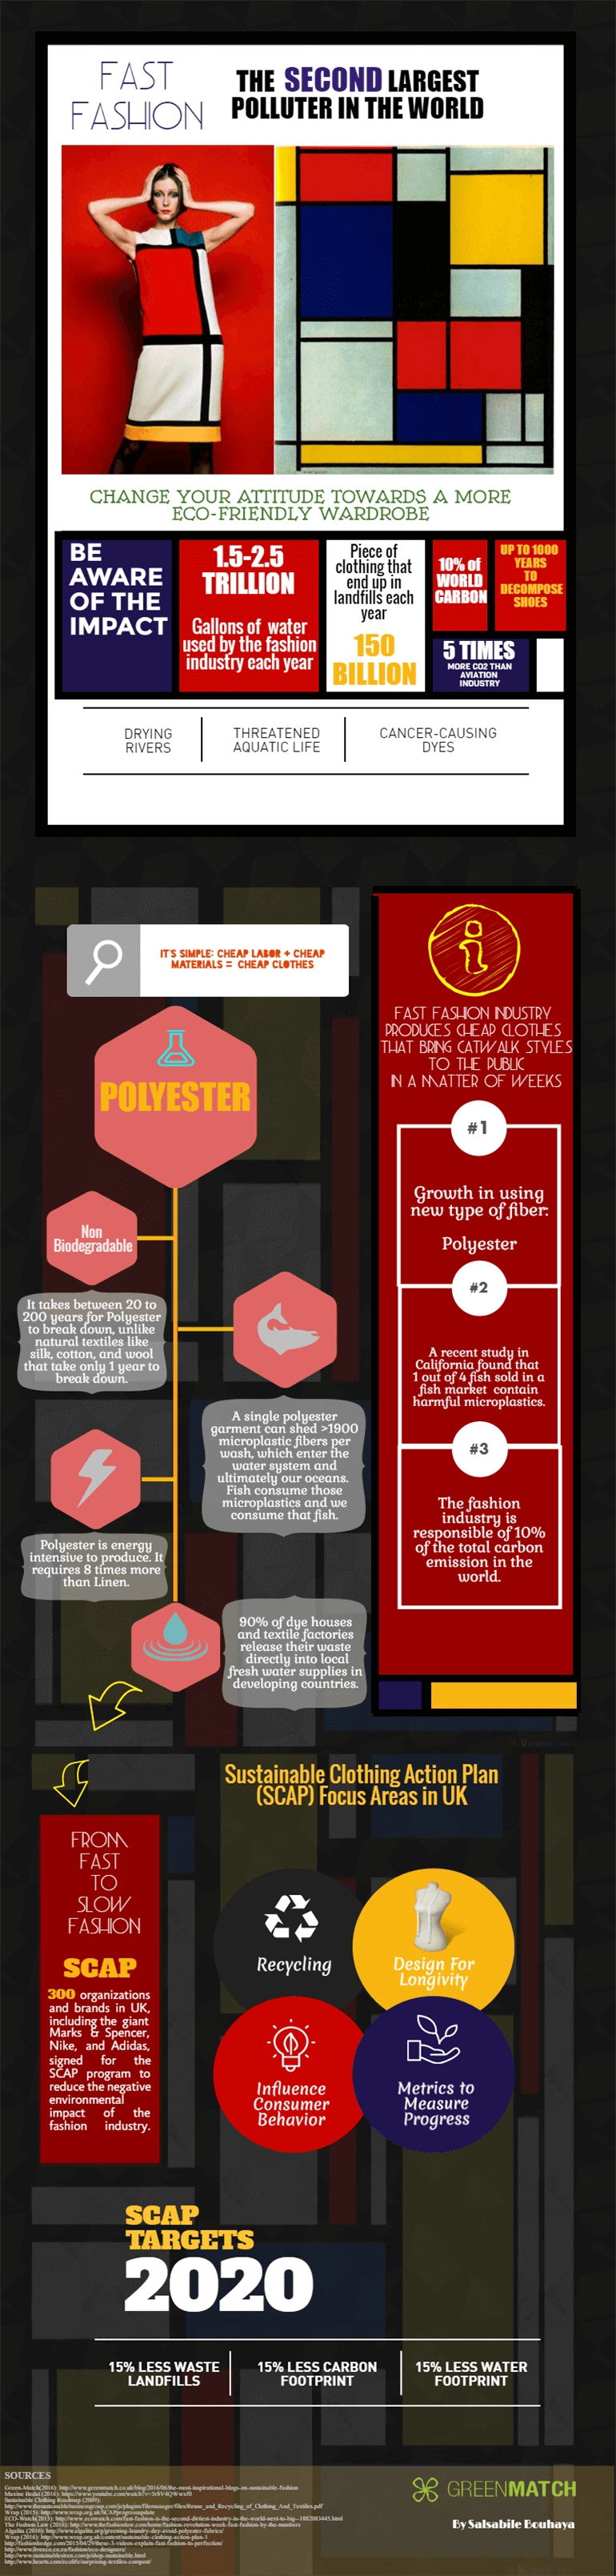 Infographic about fast fashion as the second largest polluter in the world